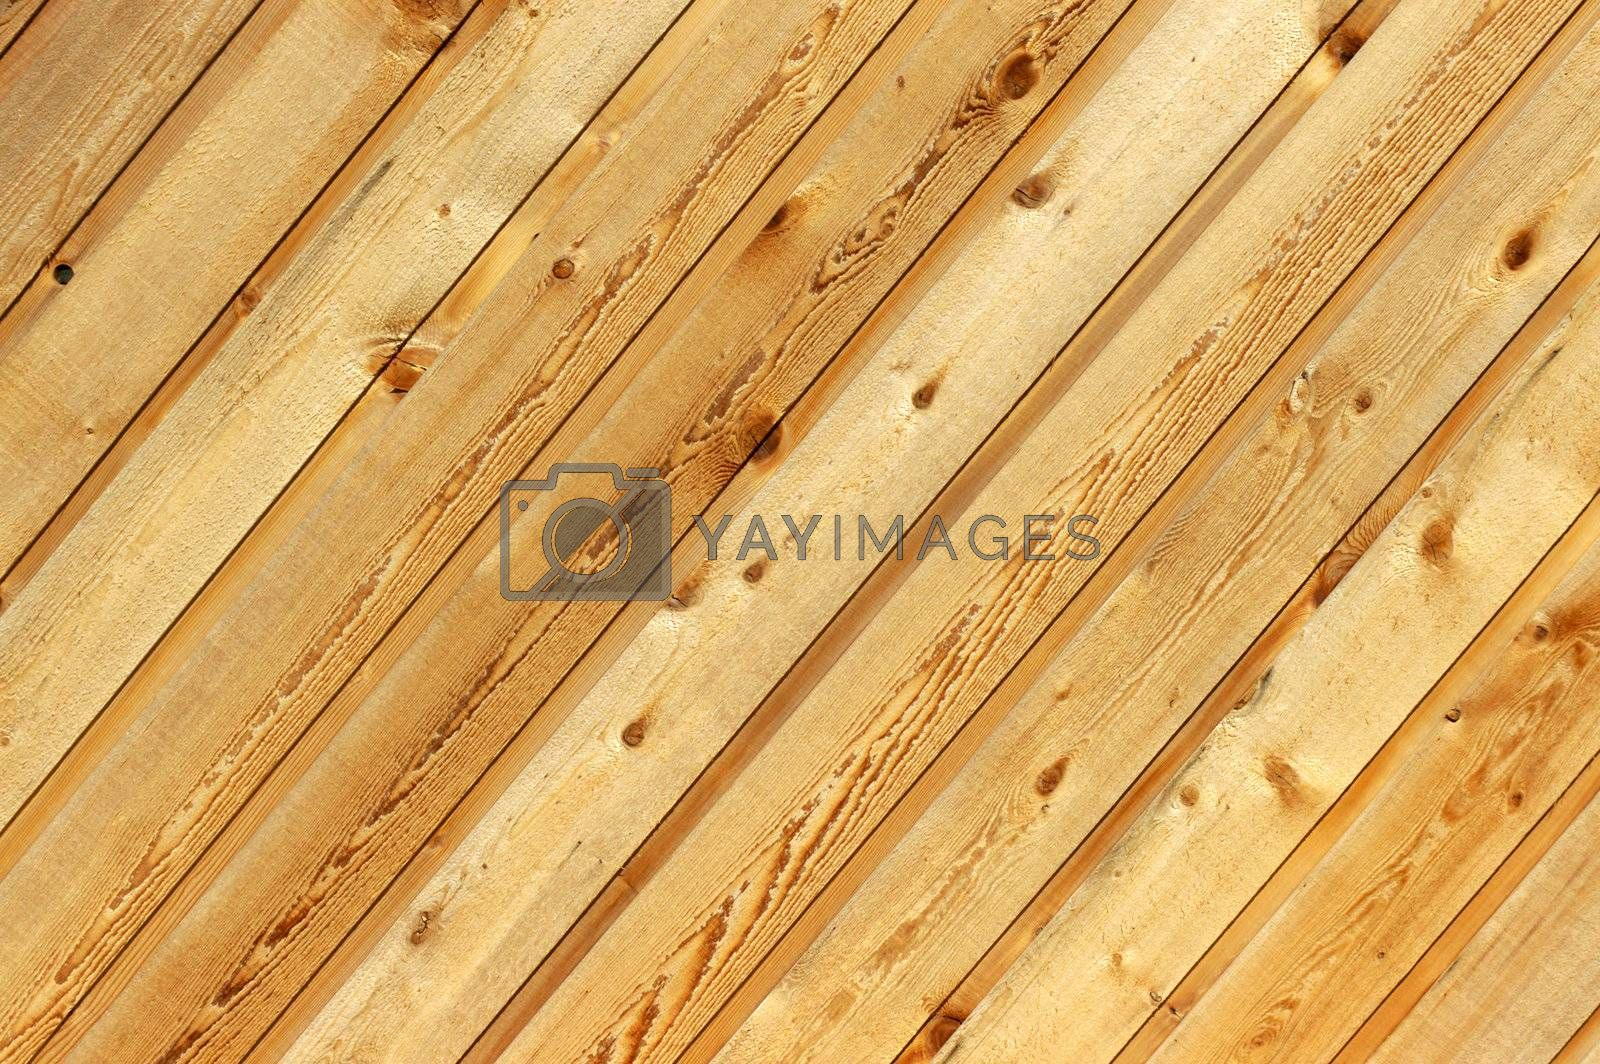 Diagonal wood siding background with knotholes and wood grain.